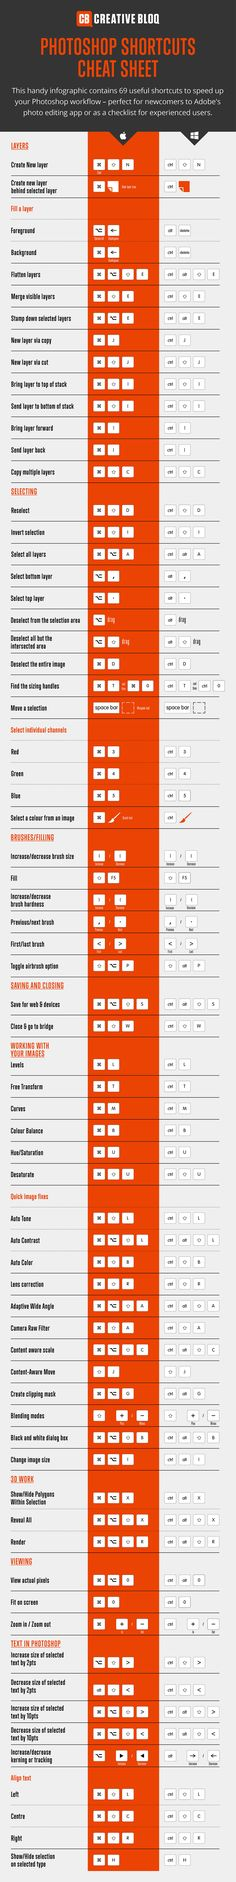 A Handy Cheat Sheet Of 69 Photoshop Shortcuts For Mac And Windows Users